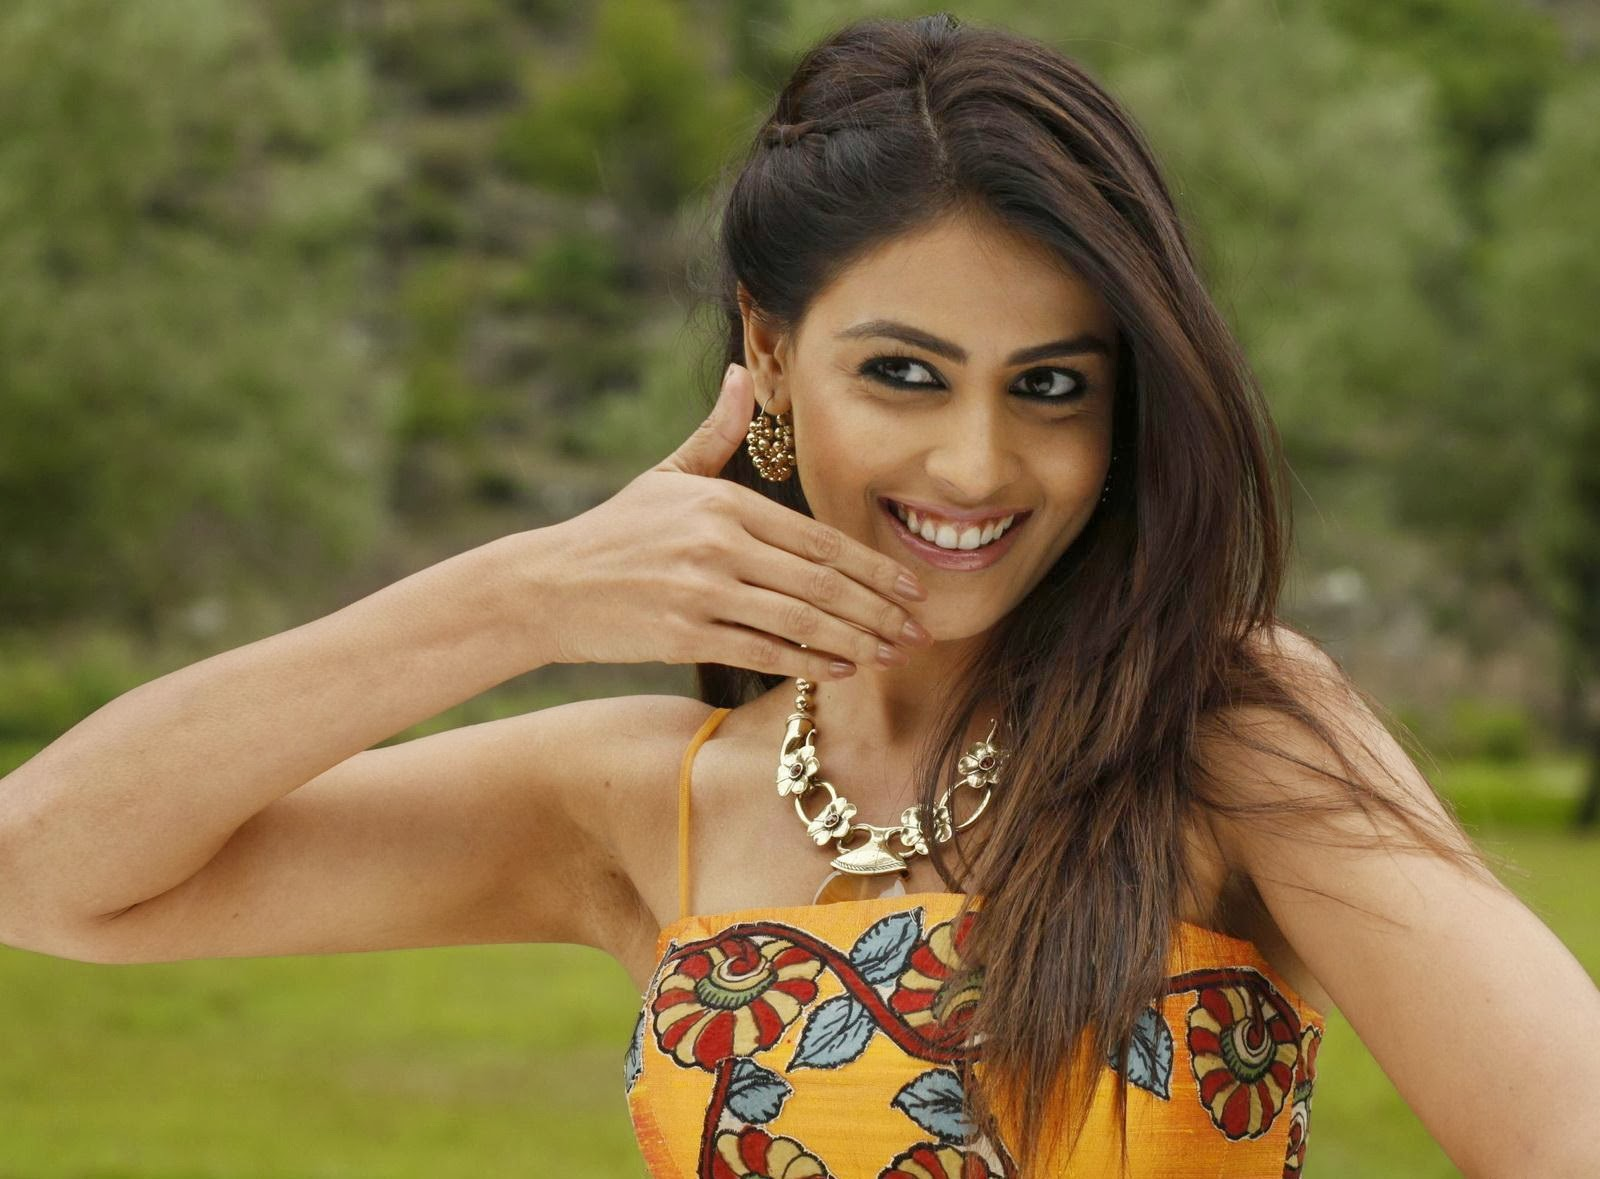 genelia d souza wallpapers free download | indian hd wallpaper free